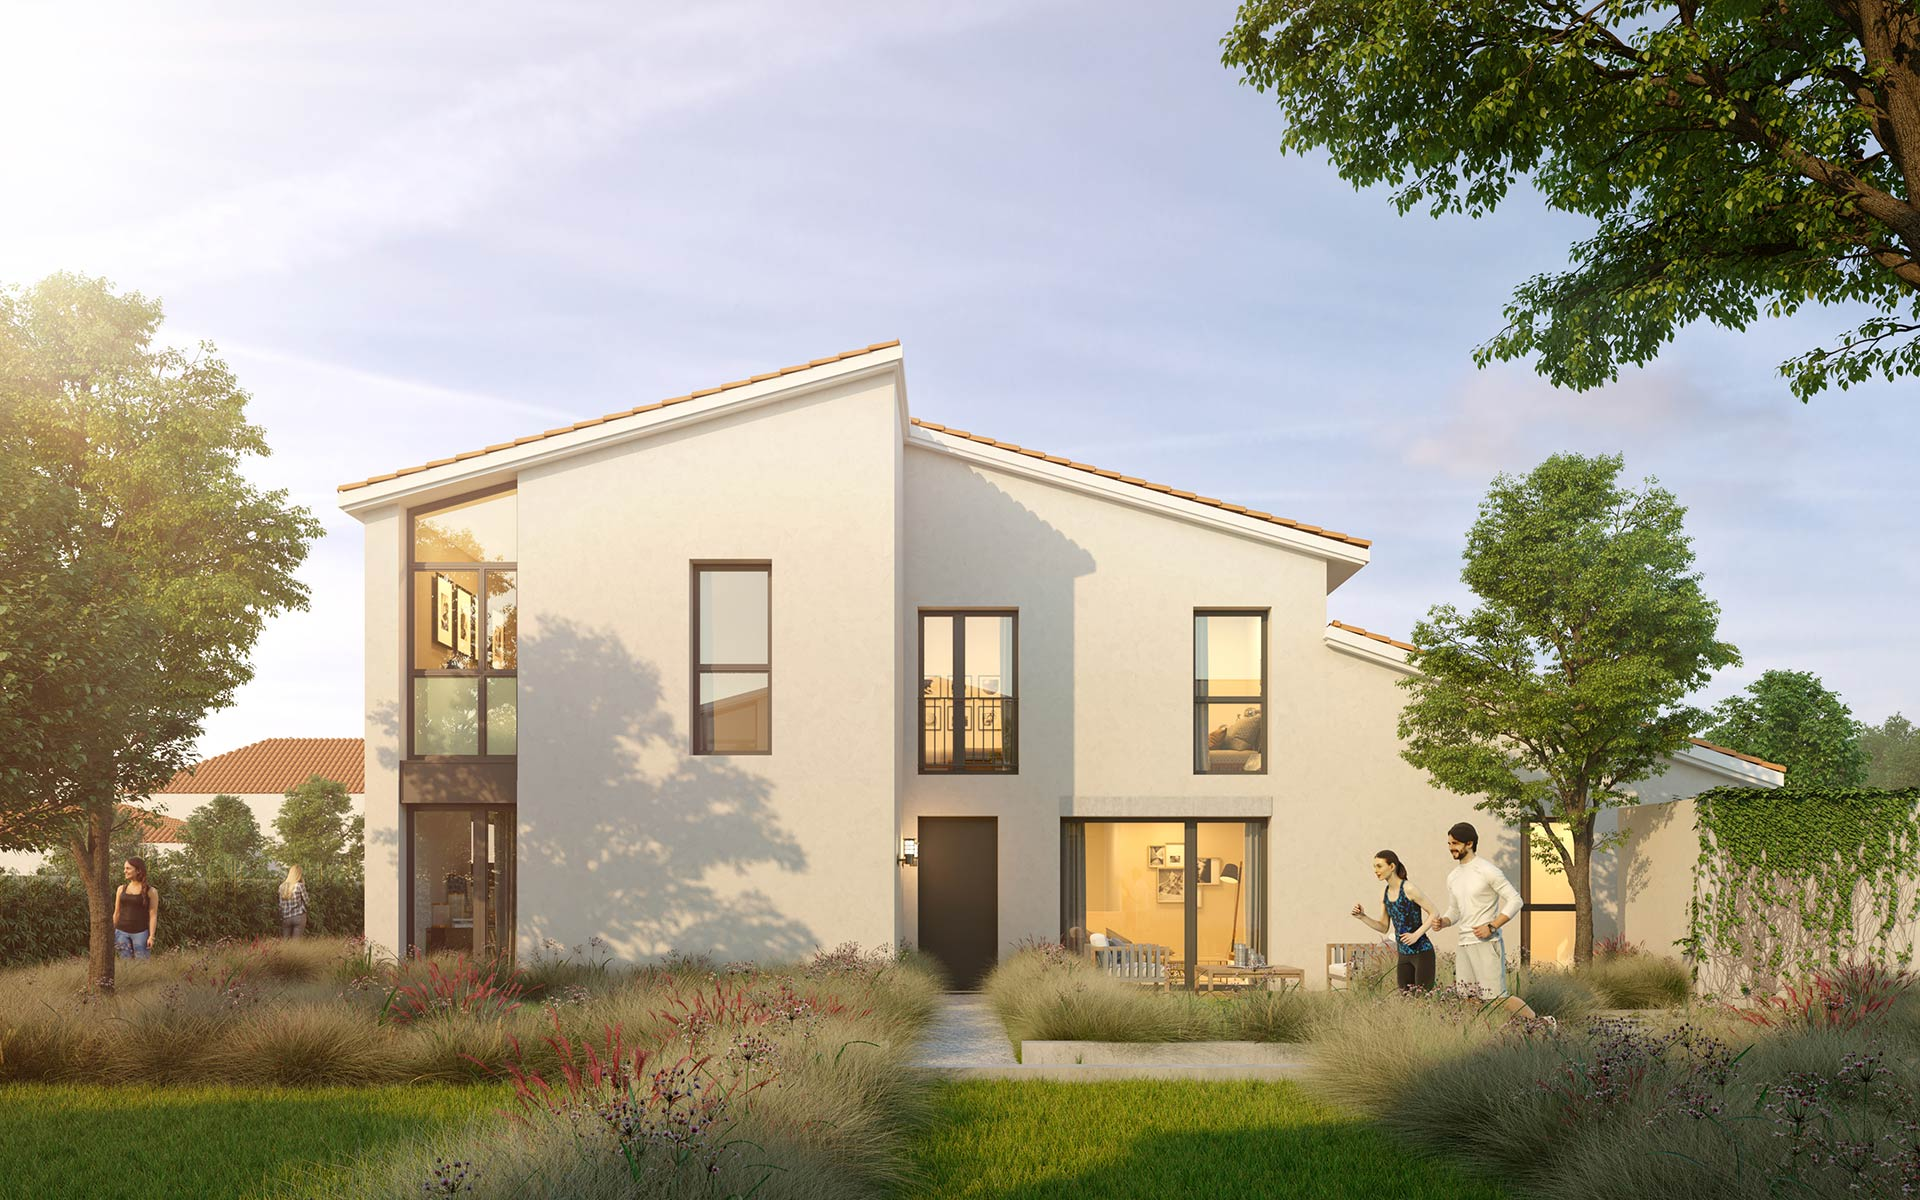 3D architectural visualization of a new house - real estate development